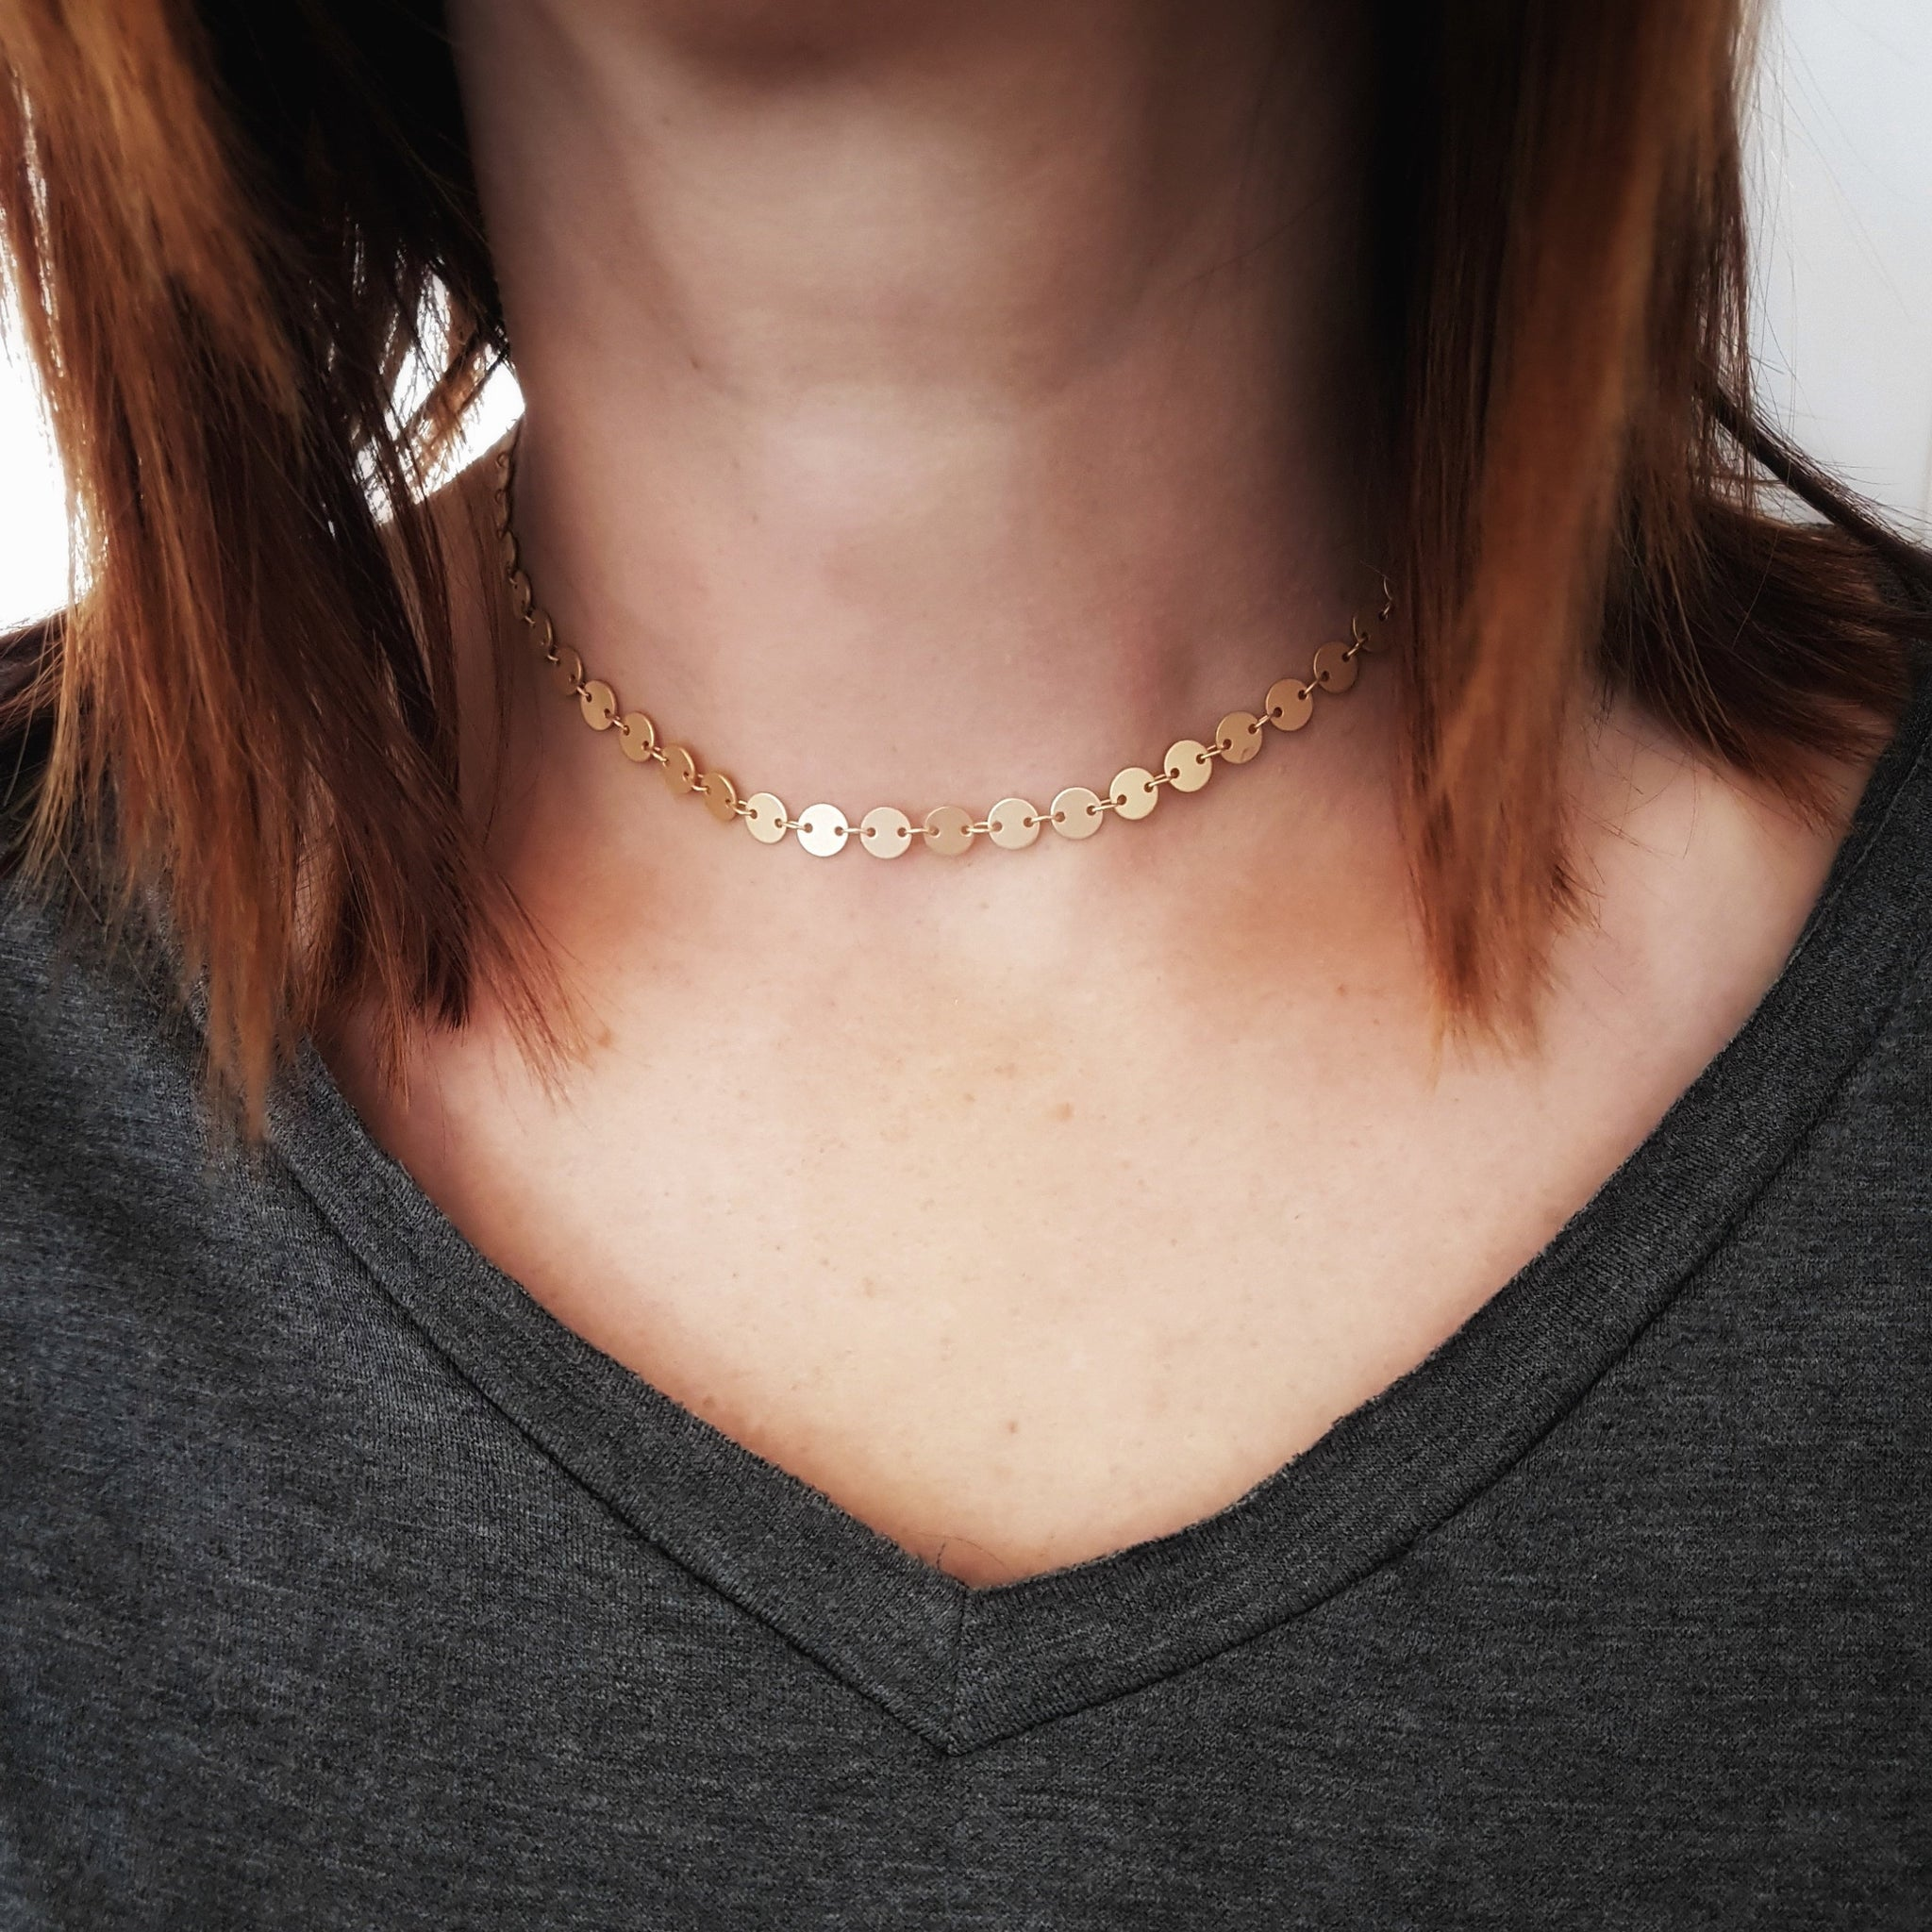 Gold Coin Choker Matte Gold Disc Choker  Gold Coin Necklace Gold Statement Choker Tattoo Choker Bridesmaid Necklace Bohemian Necklace - Gwen Delicious Jewelry Designs